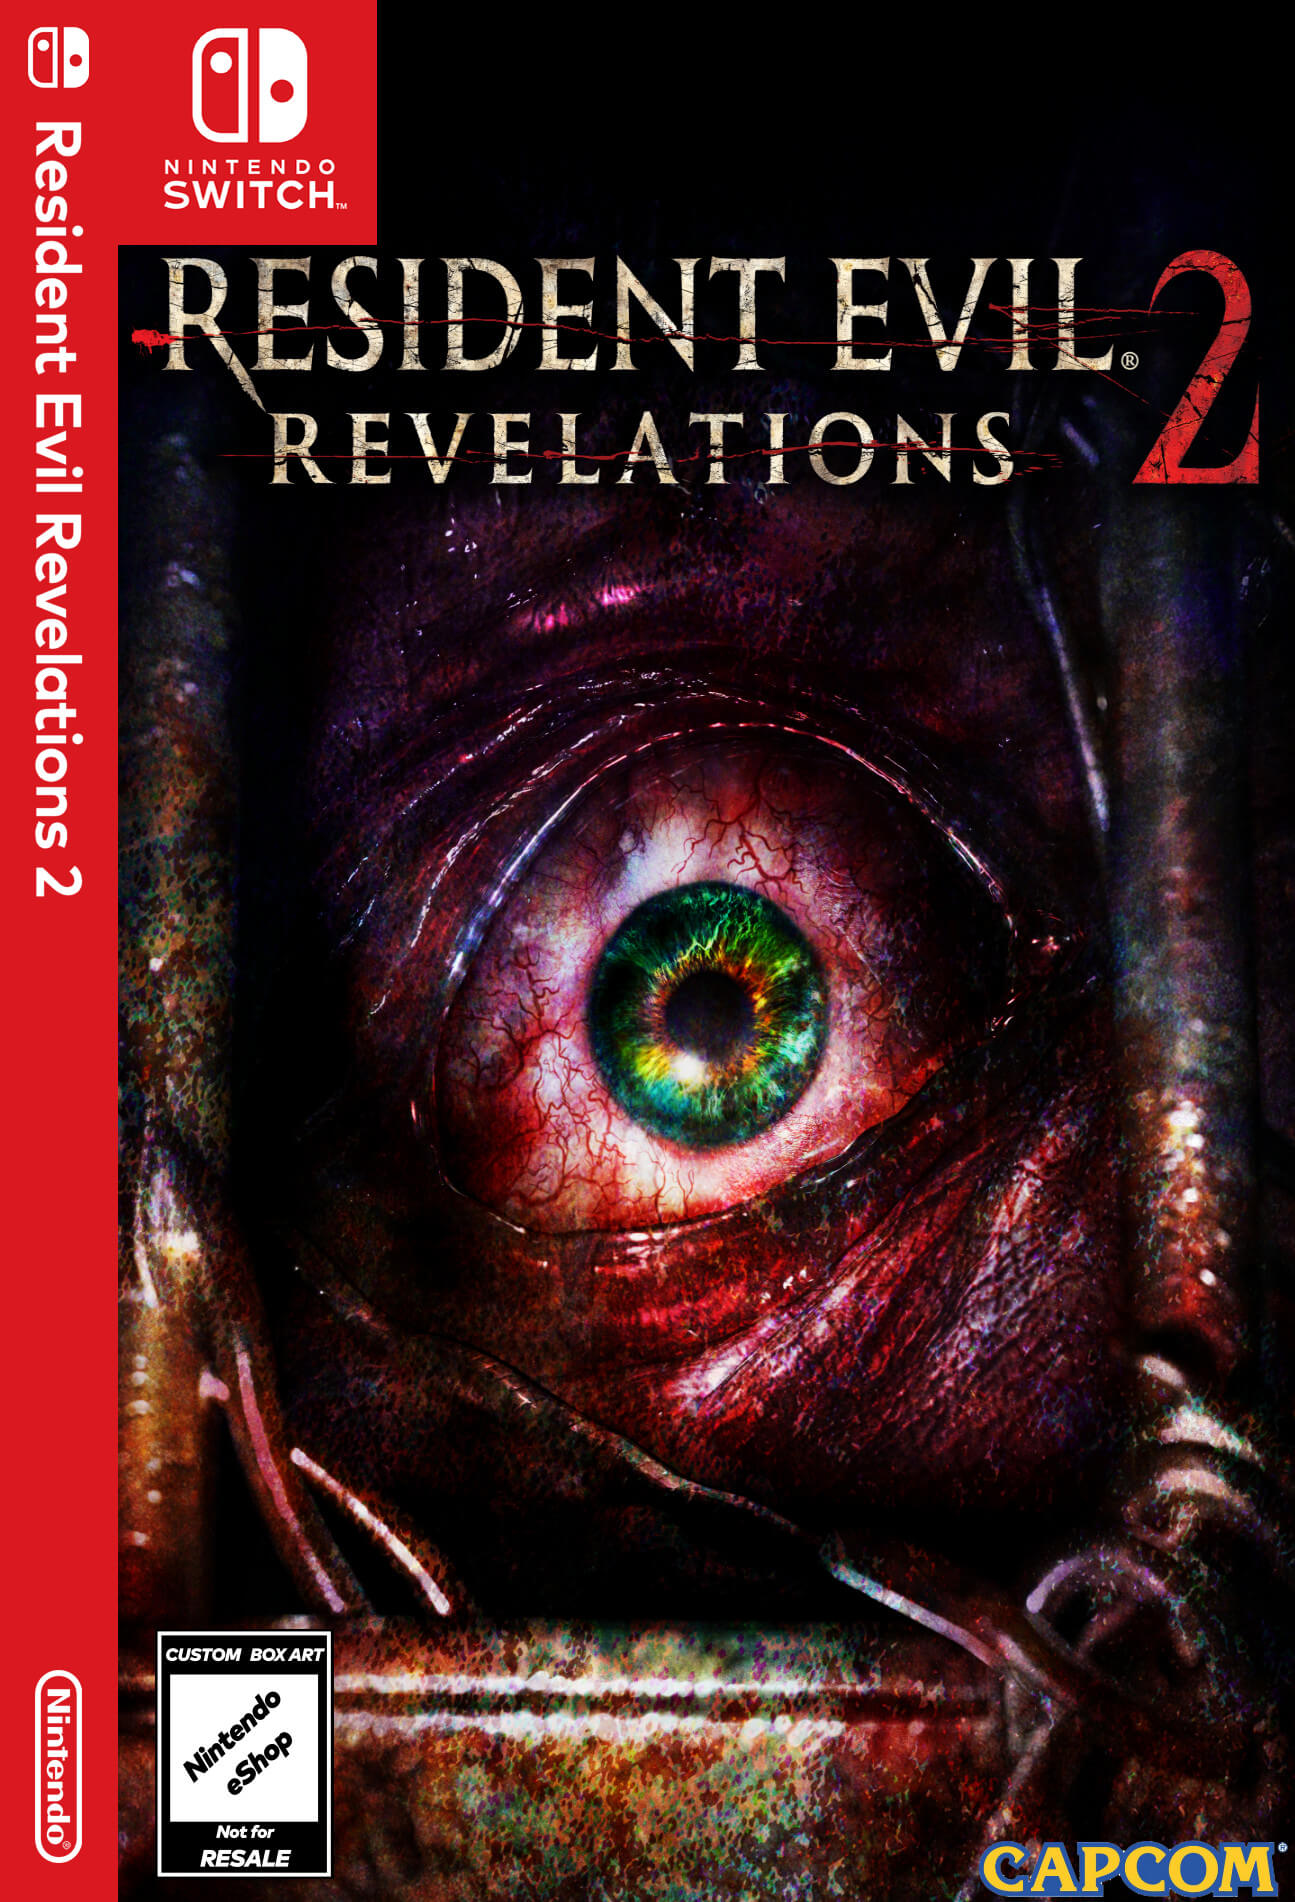 A custom boxart design for Resident Evil: Revelations 2, which never saw a physical release (of it's own) on Switch